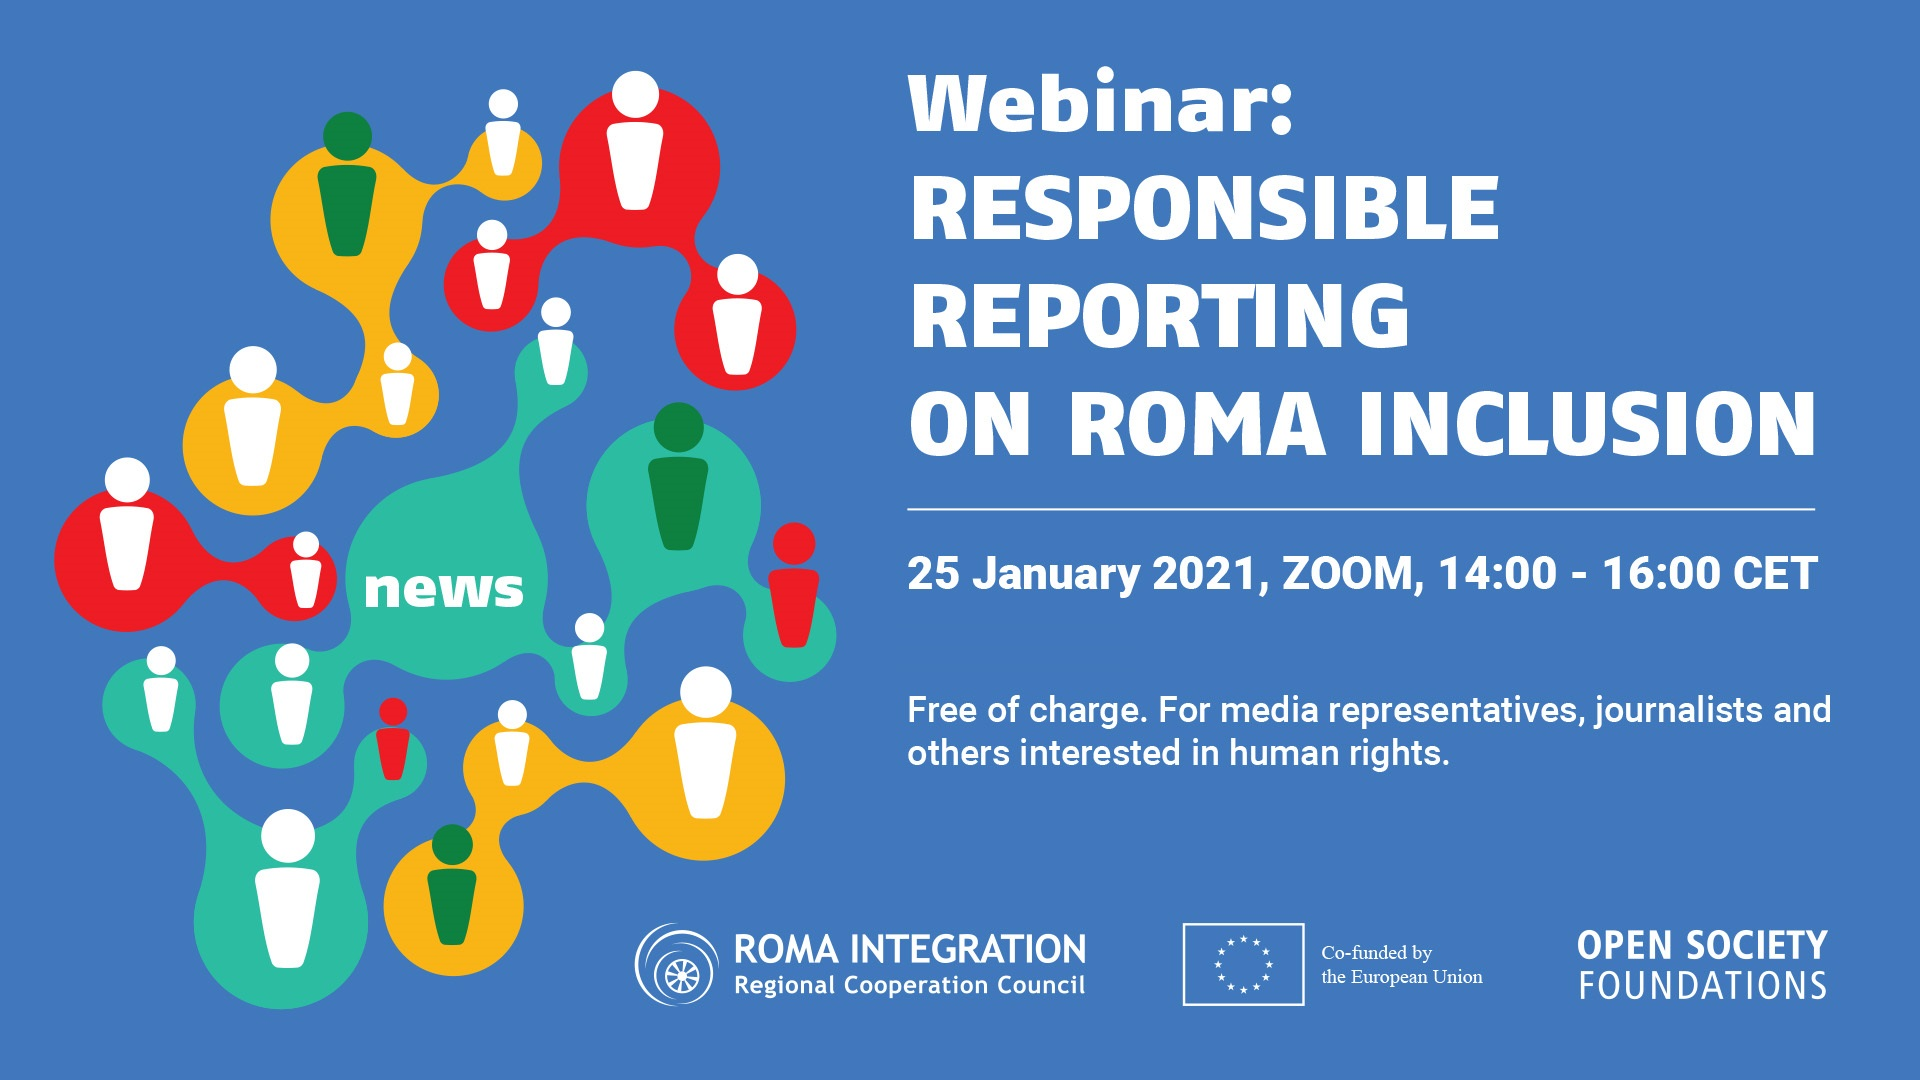 Webinar - Responsible reporting on Roma inclusion